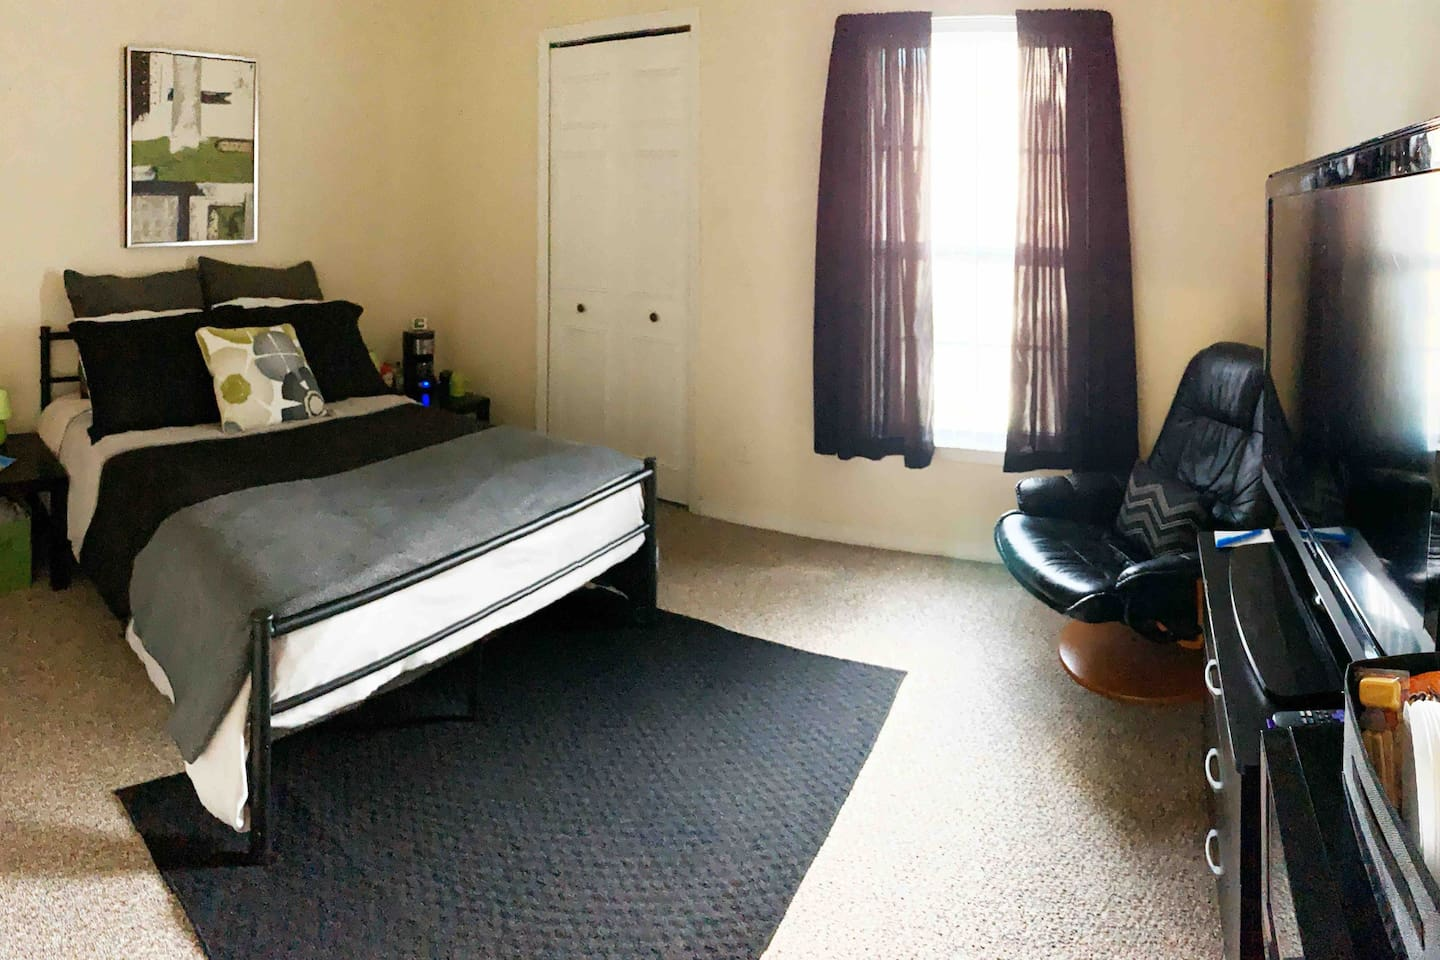 The private room comfortably sleeps 2 with lots of luggage storage space, extra linens/blankets/pillows, bedside nightstands/lamps/outlets, small dresser, TV, mini fridge, microwave, coffee station, curtains, large mirror, ceiling fan and closet.